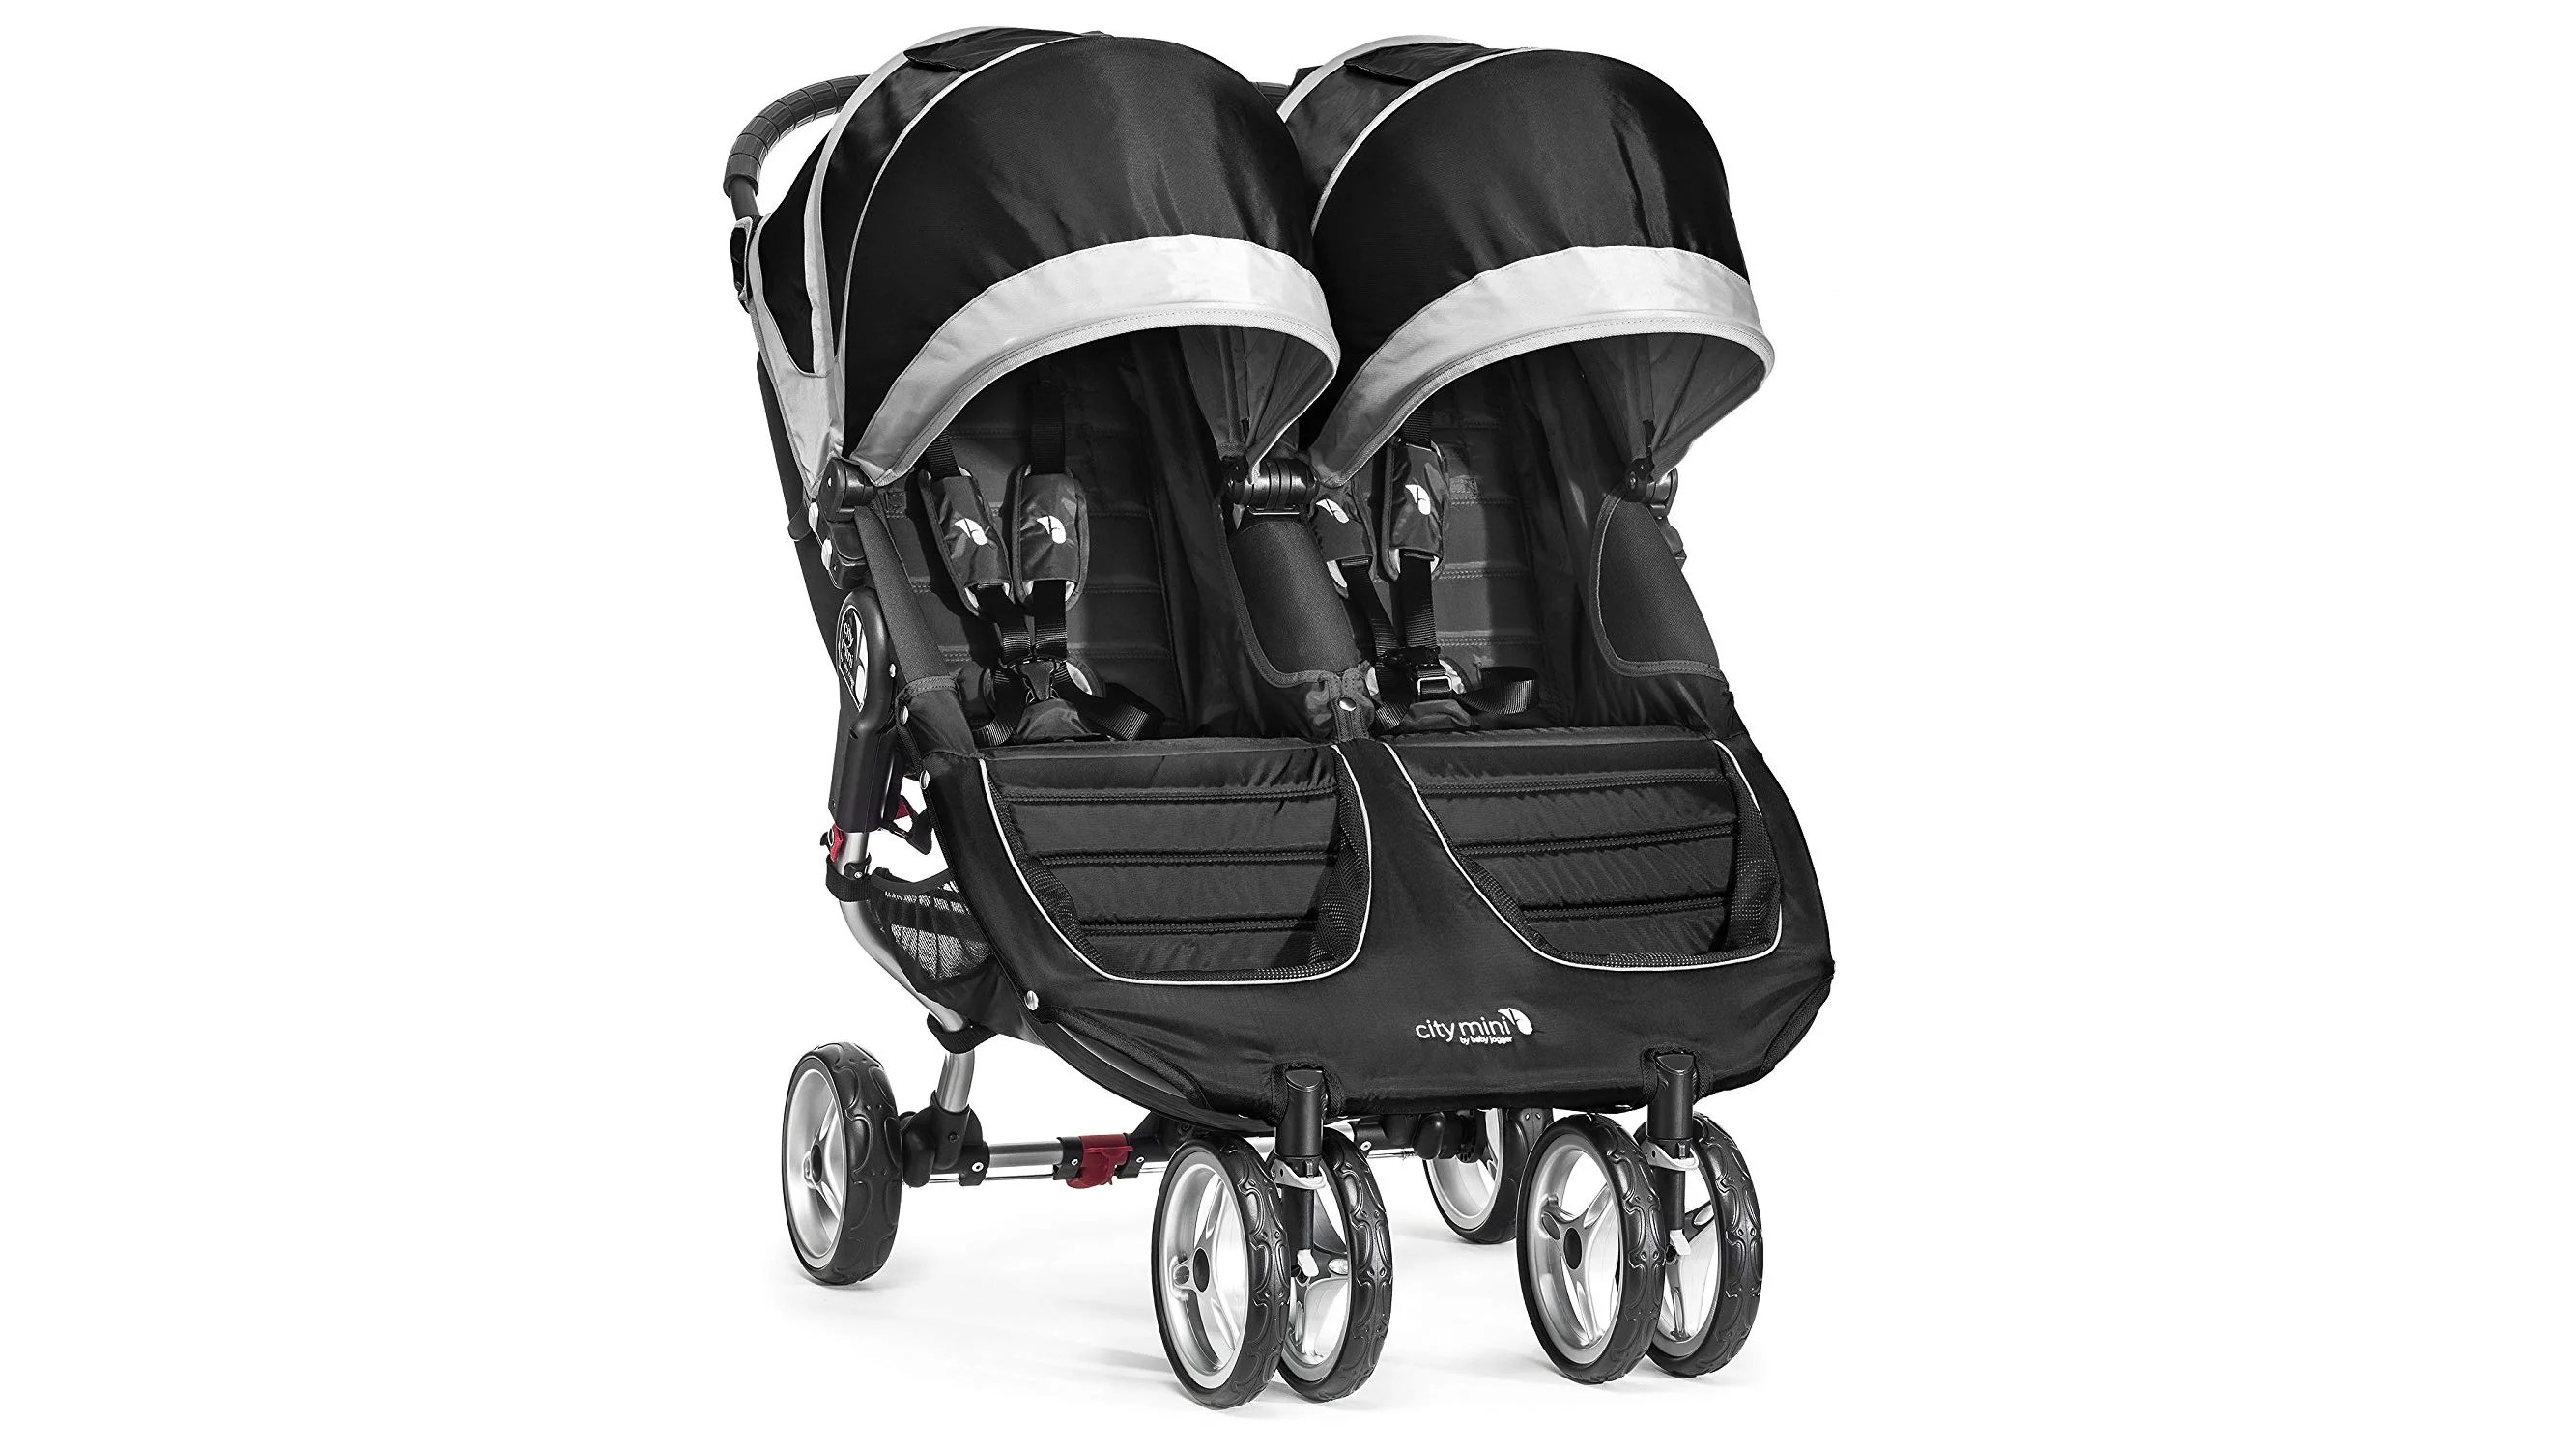 Baby Prams For Sale Uk Best Double Buggy The Best Double Pushchairs And Prams For